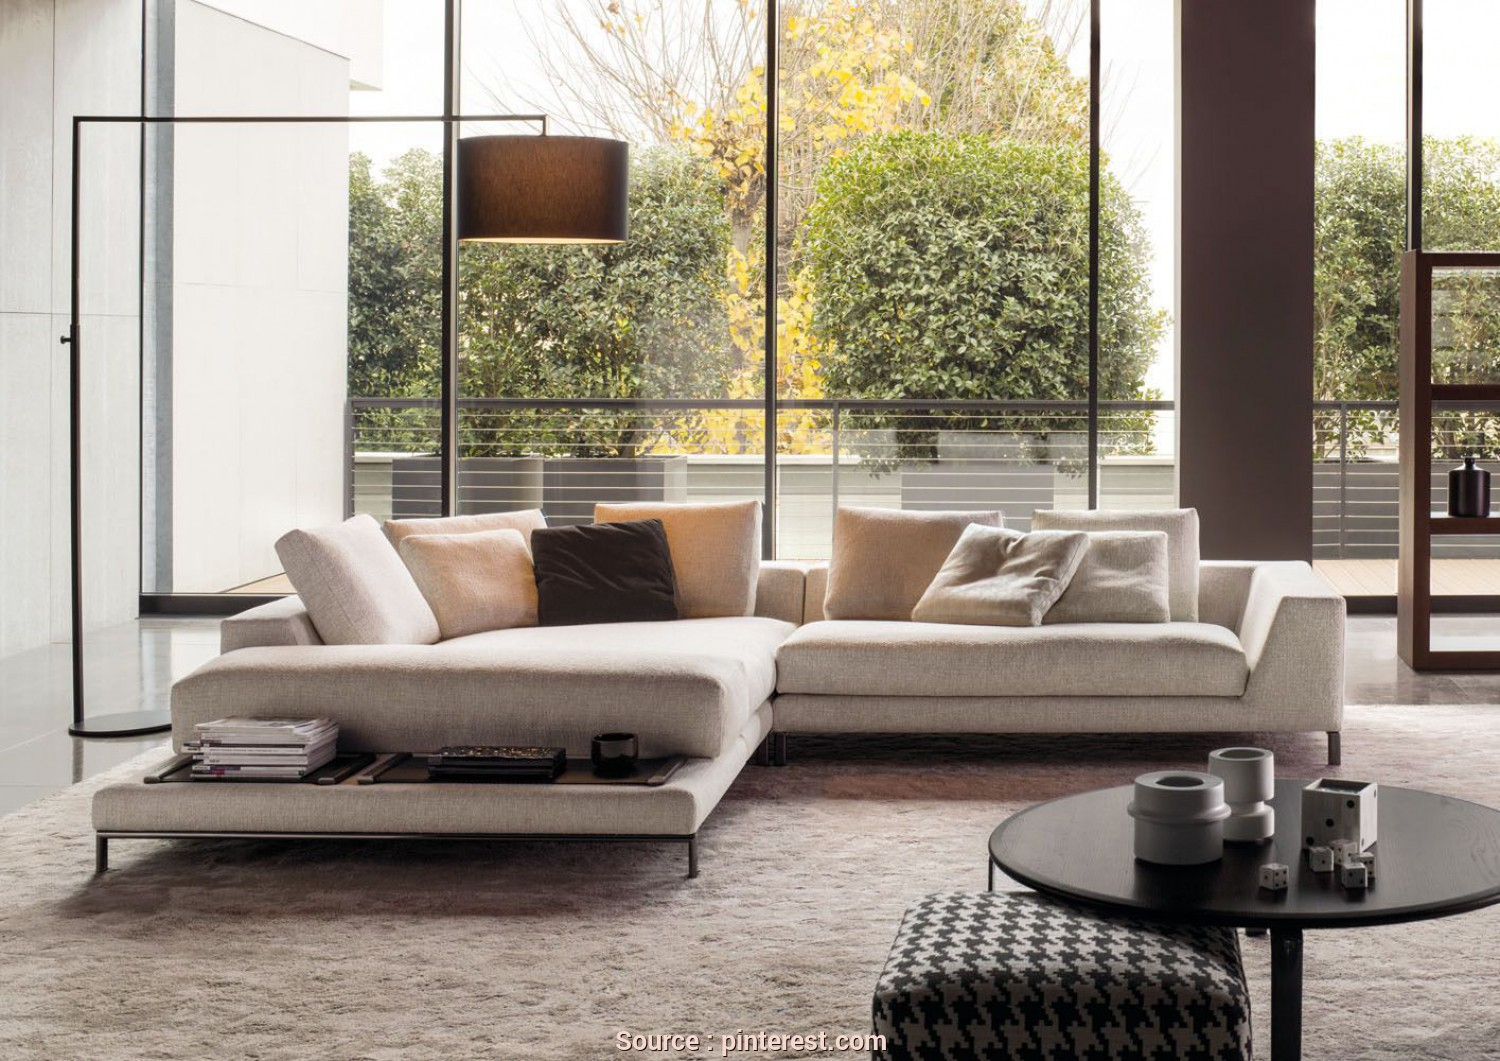 Divano Hamilton Island Minotti, Deale HAMILTON ISLANDS, SOFAS EN Minotti Relies On, Hamilton Islands Version To Offer A Further Enriched Hamilton Seating System, In Contents As In Form